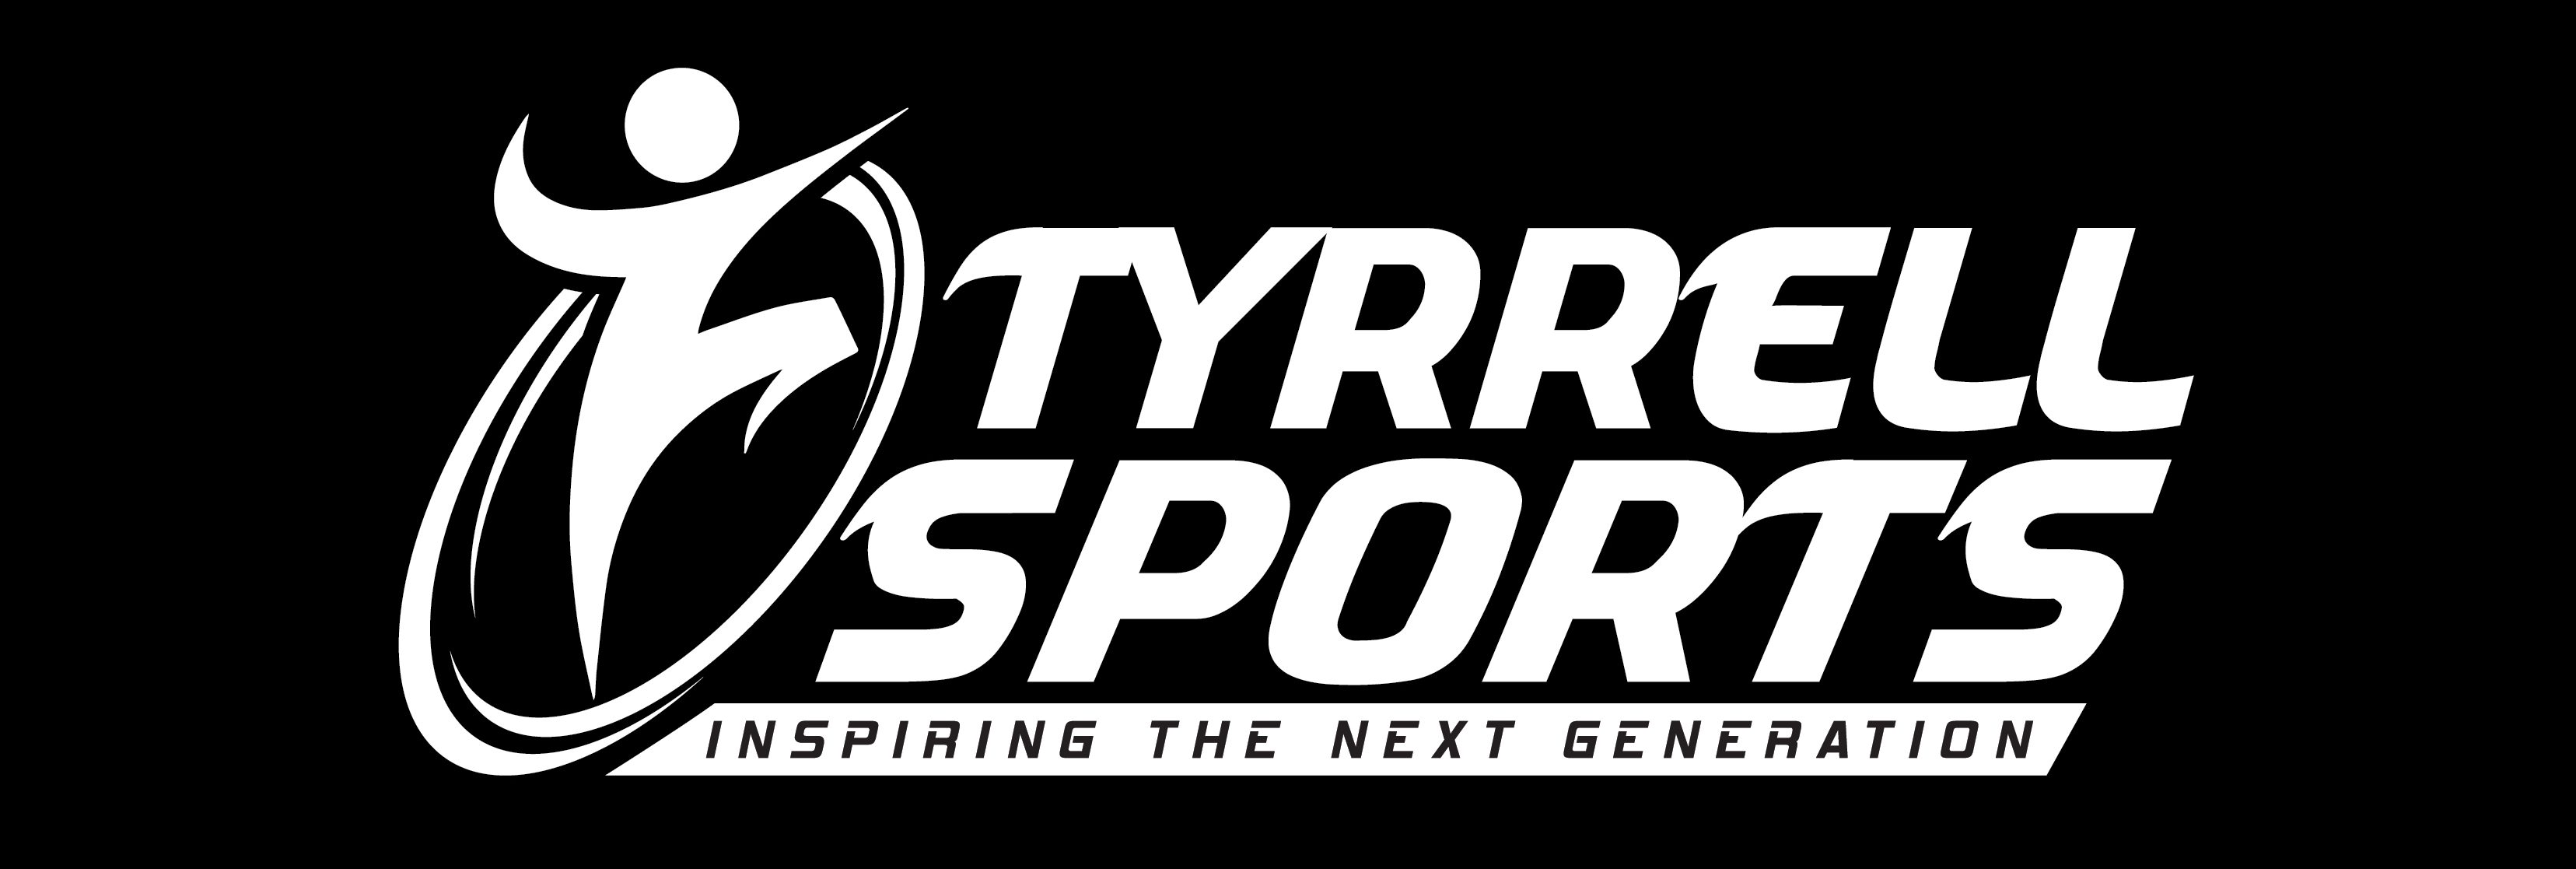 Tyrrell Sports Coaching and Education Ltd